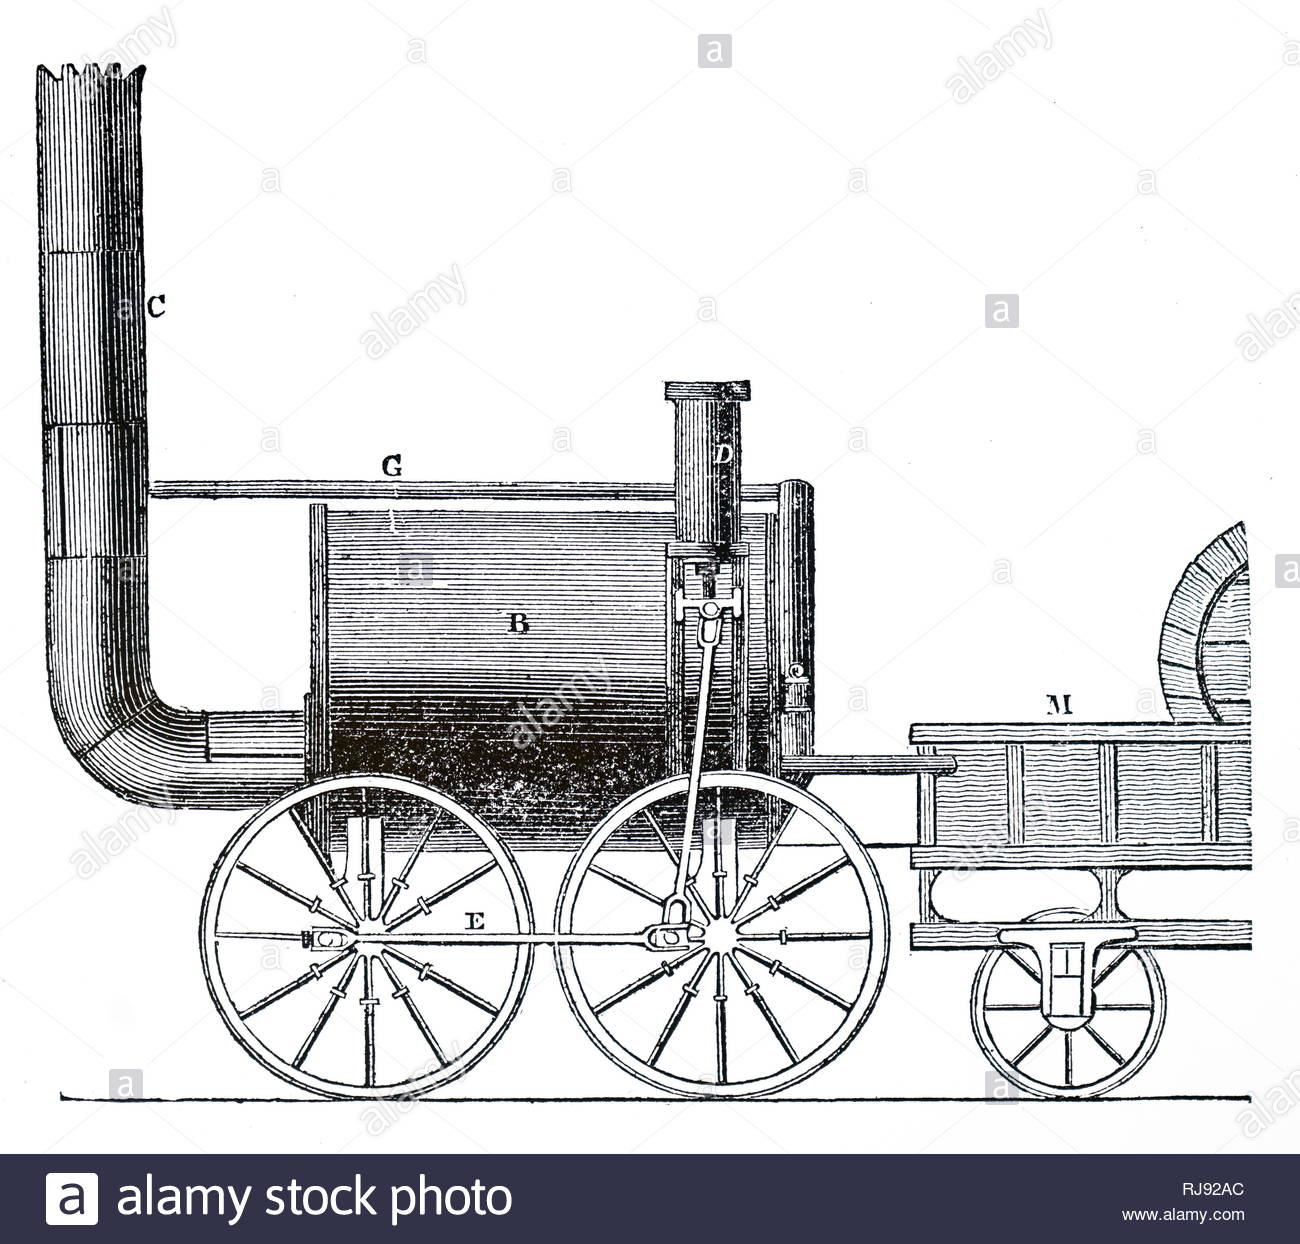 Engraving depicting Timothy Hackworth's locomotive 'Sans Pareil'. Timothy Hackworth (1786-1850) a steam locomotive engineer and the first locomotive superintendent of the Stockton and Darlington Railway. Dated 19th century - Stock Image